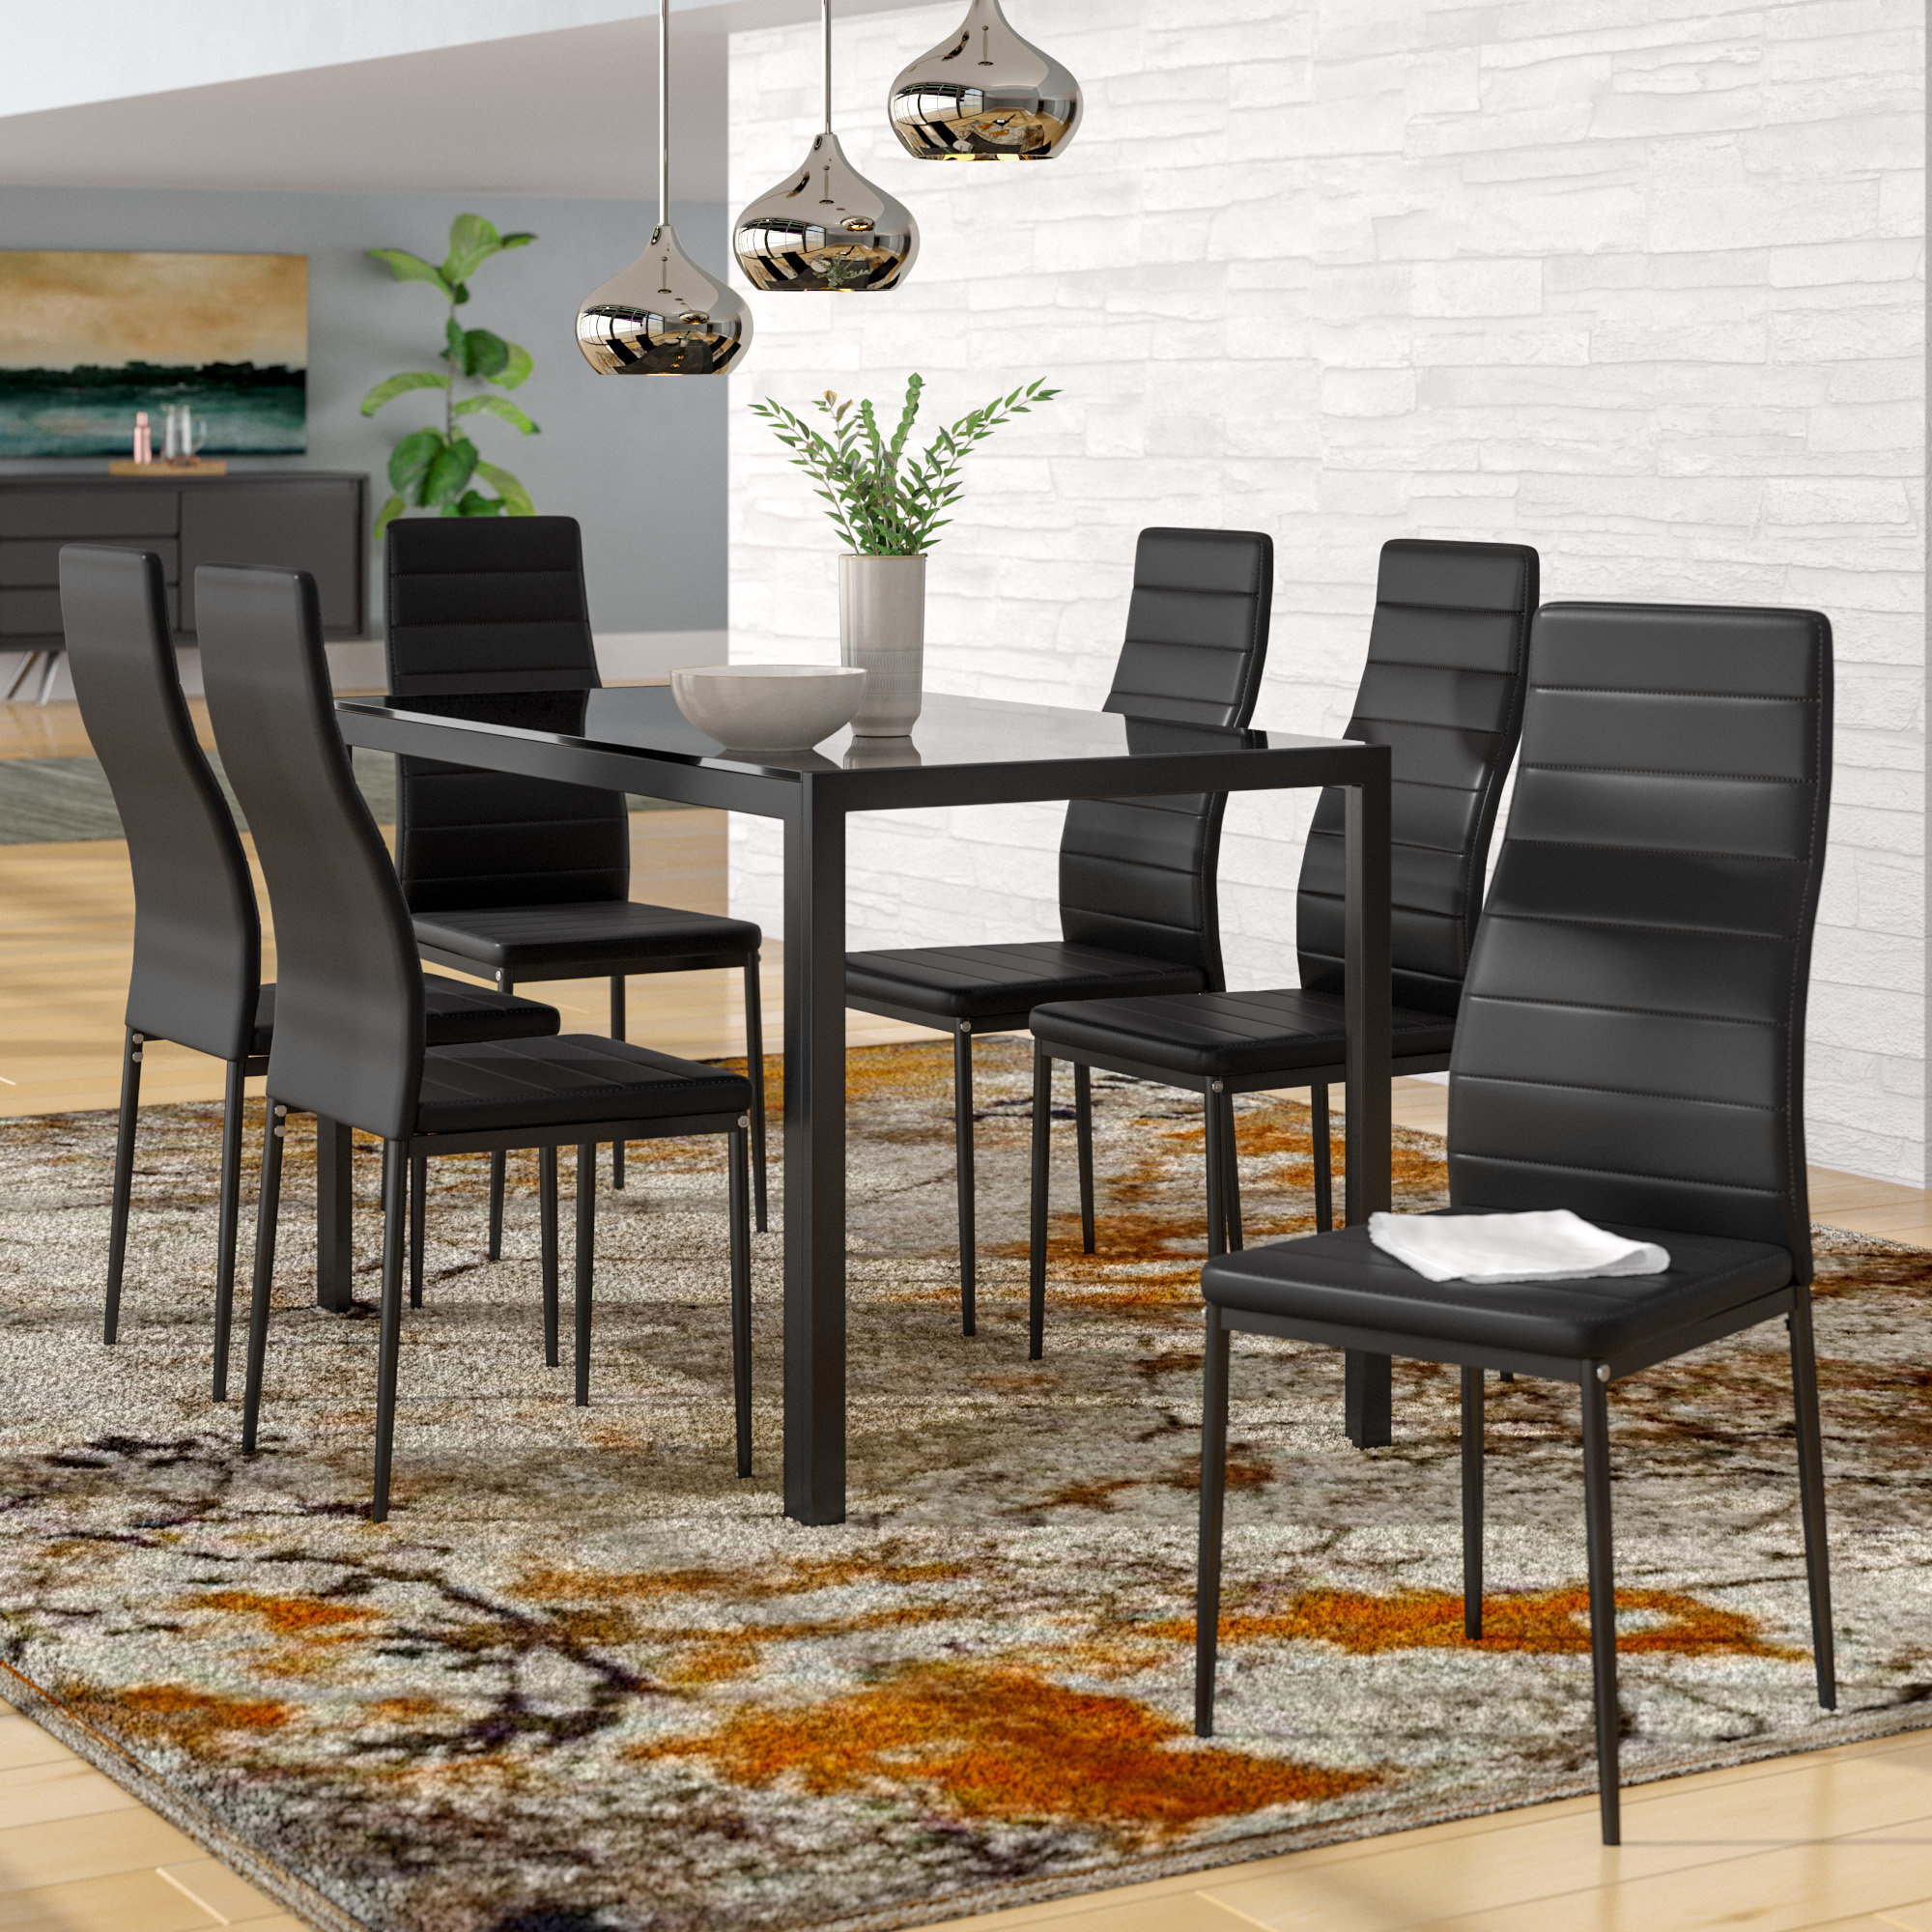 Preferred Orren Ellis Renick Modern 7 Piece Dining Set & Reviews (View 16 of 25)